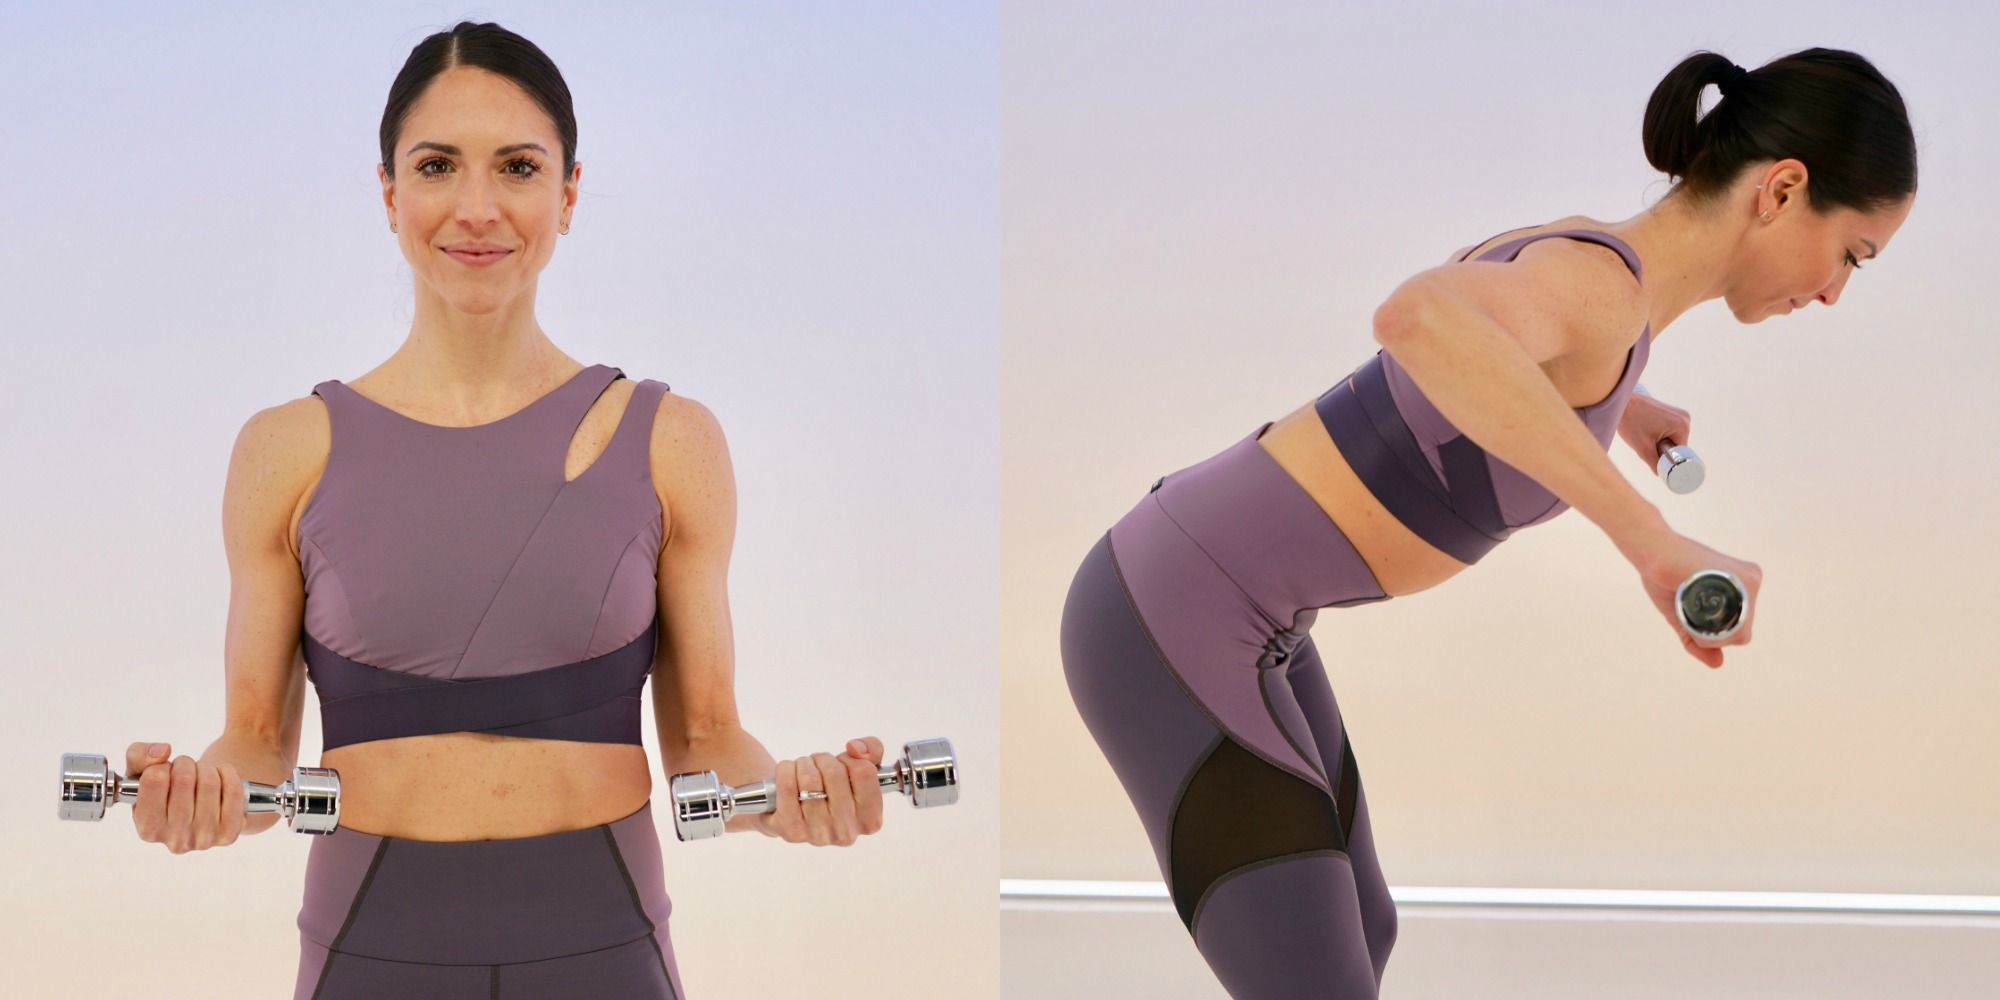 Image result for This 15-Minute Total Body Workout Strengthens You From Head to Toe prevention.com